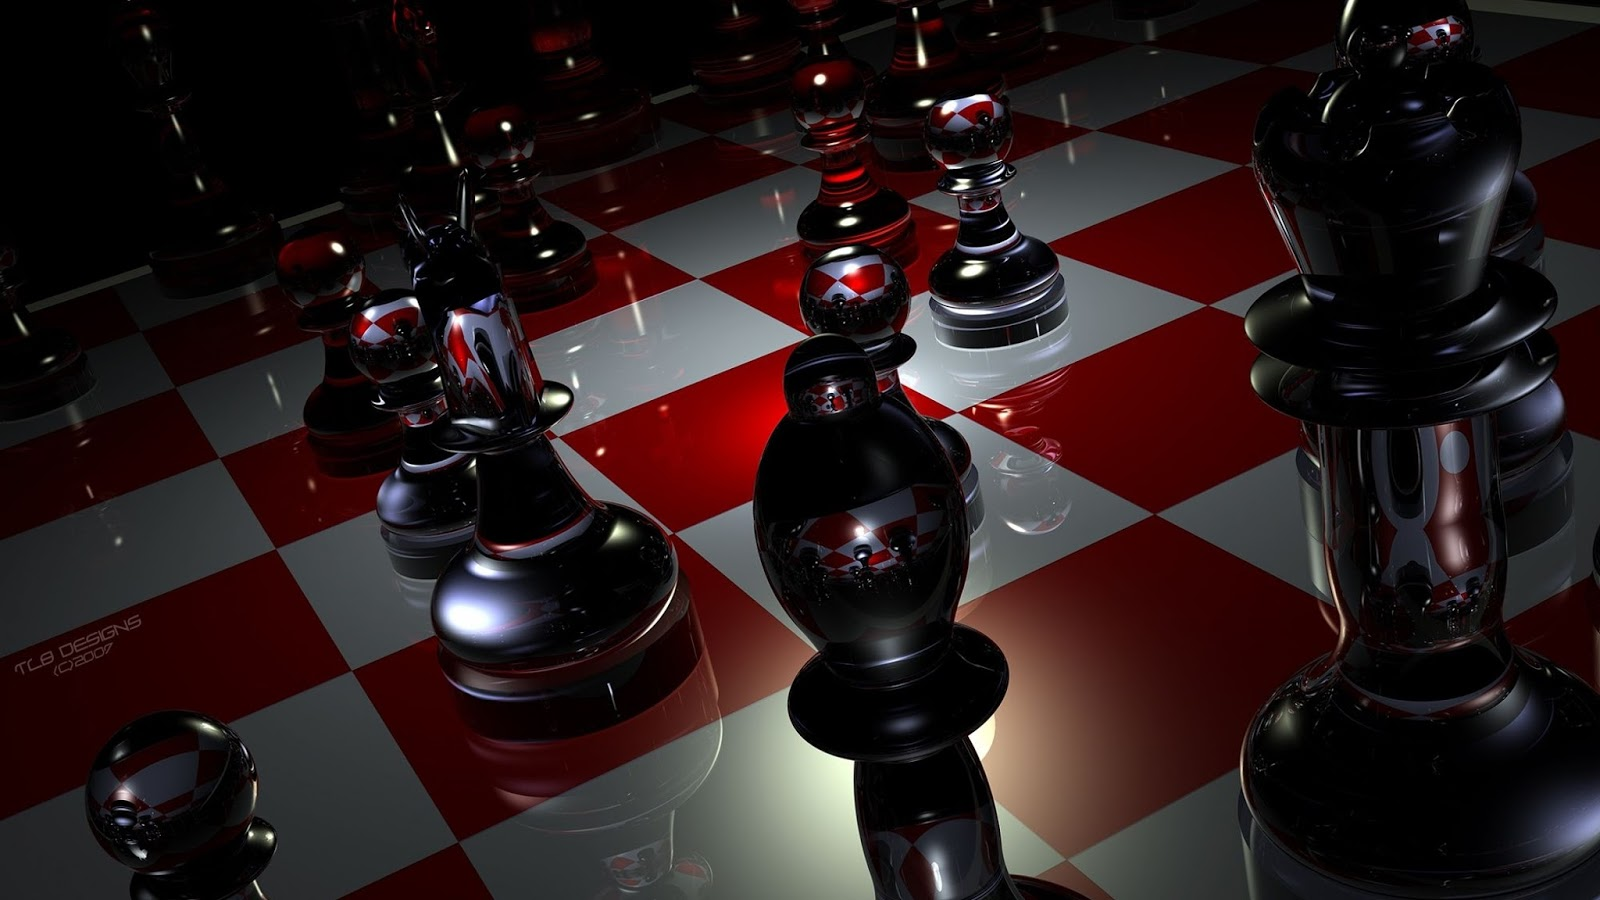 Top Wallpapers Free Download Pieces Chess Boards Glass Wallpaper